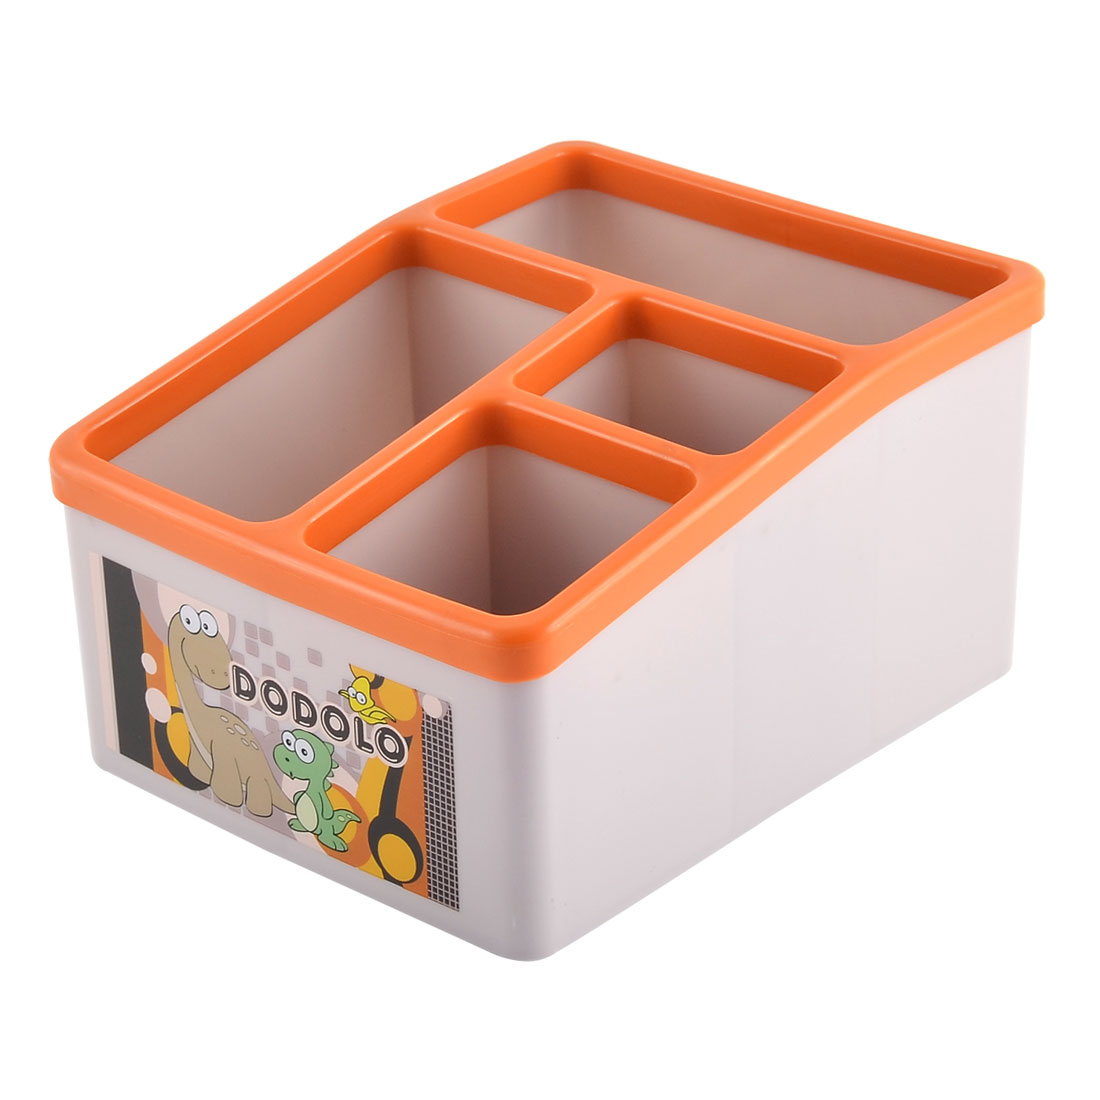 Desk PP Multifunctional Classification Remote Control Storage Box